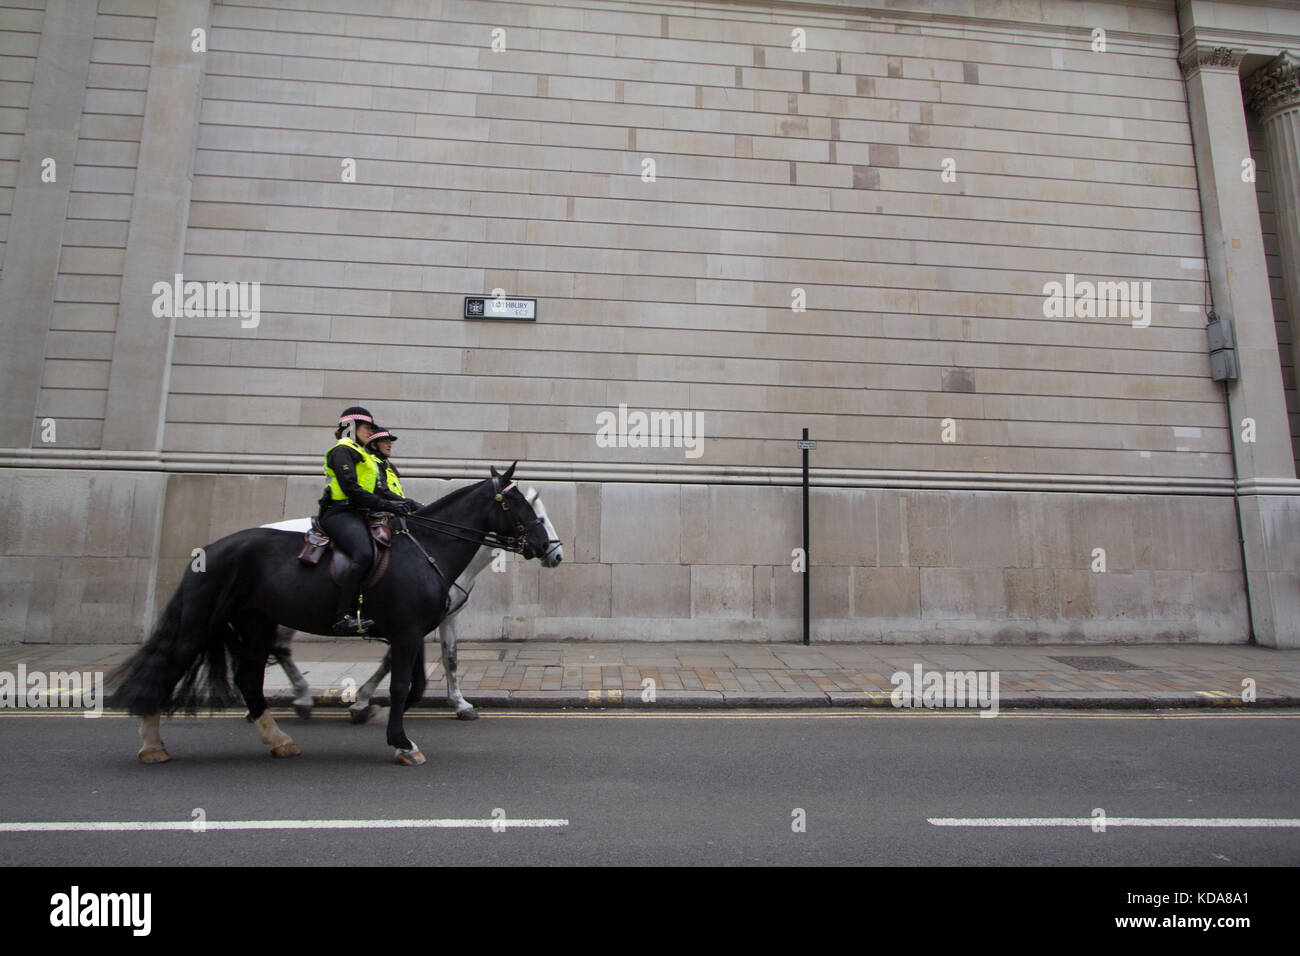 Police officers on horseback go past the Bank of England in Lothbury, city of London - Stock Image